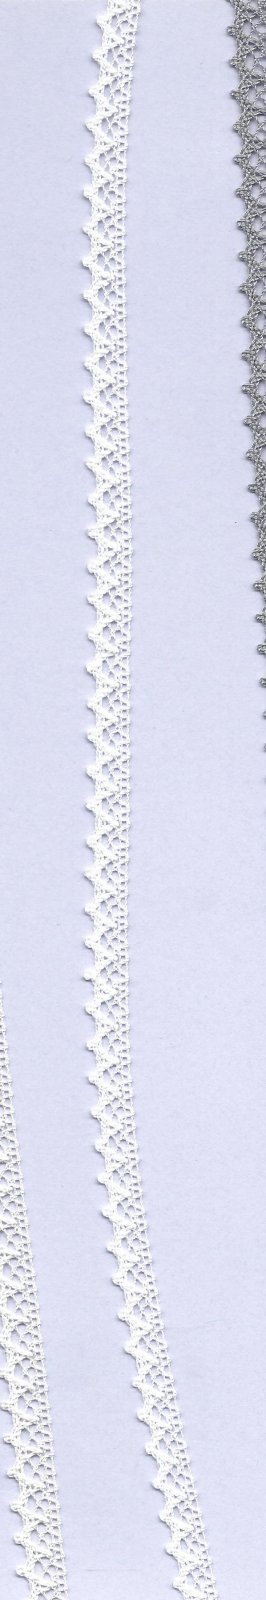 PFA COTTON LACE TRIM 8mm col.001